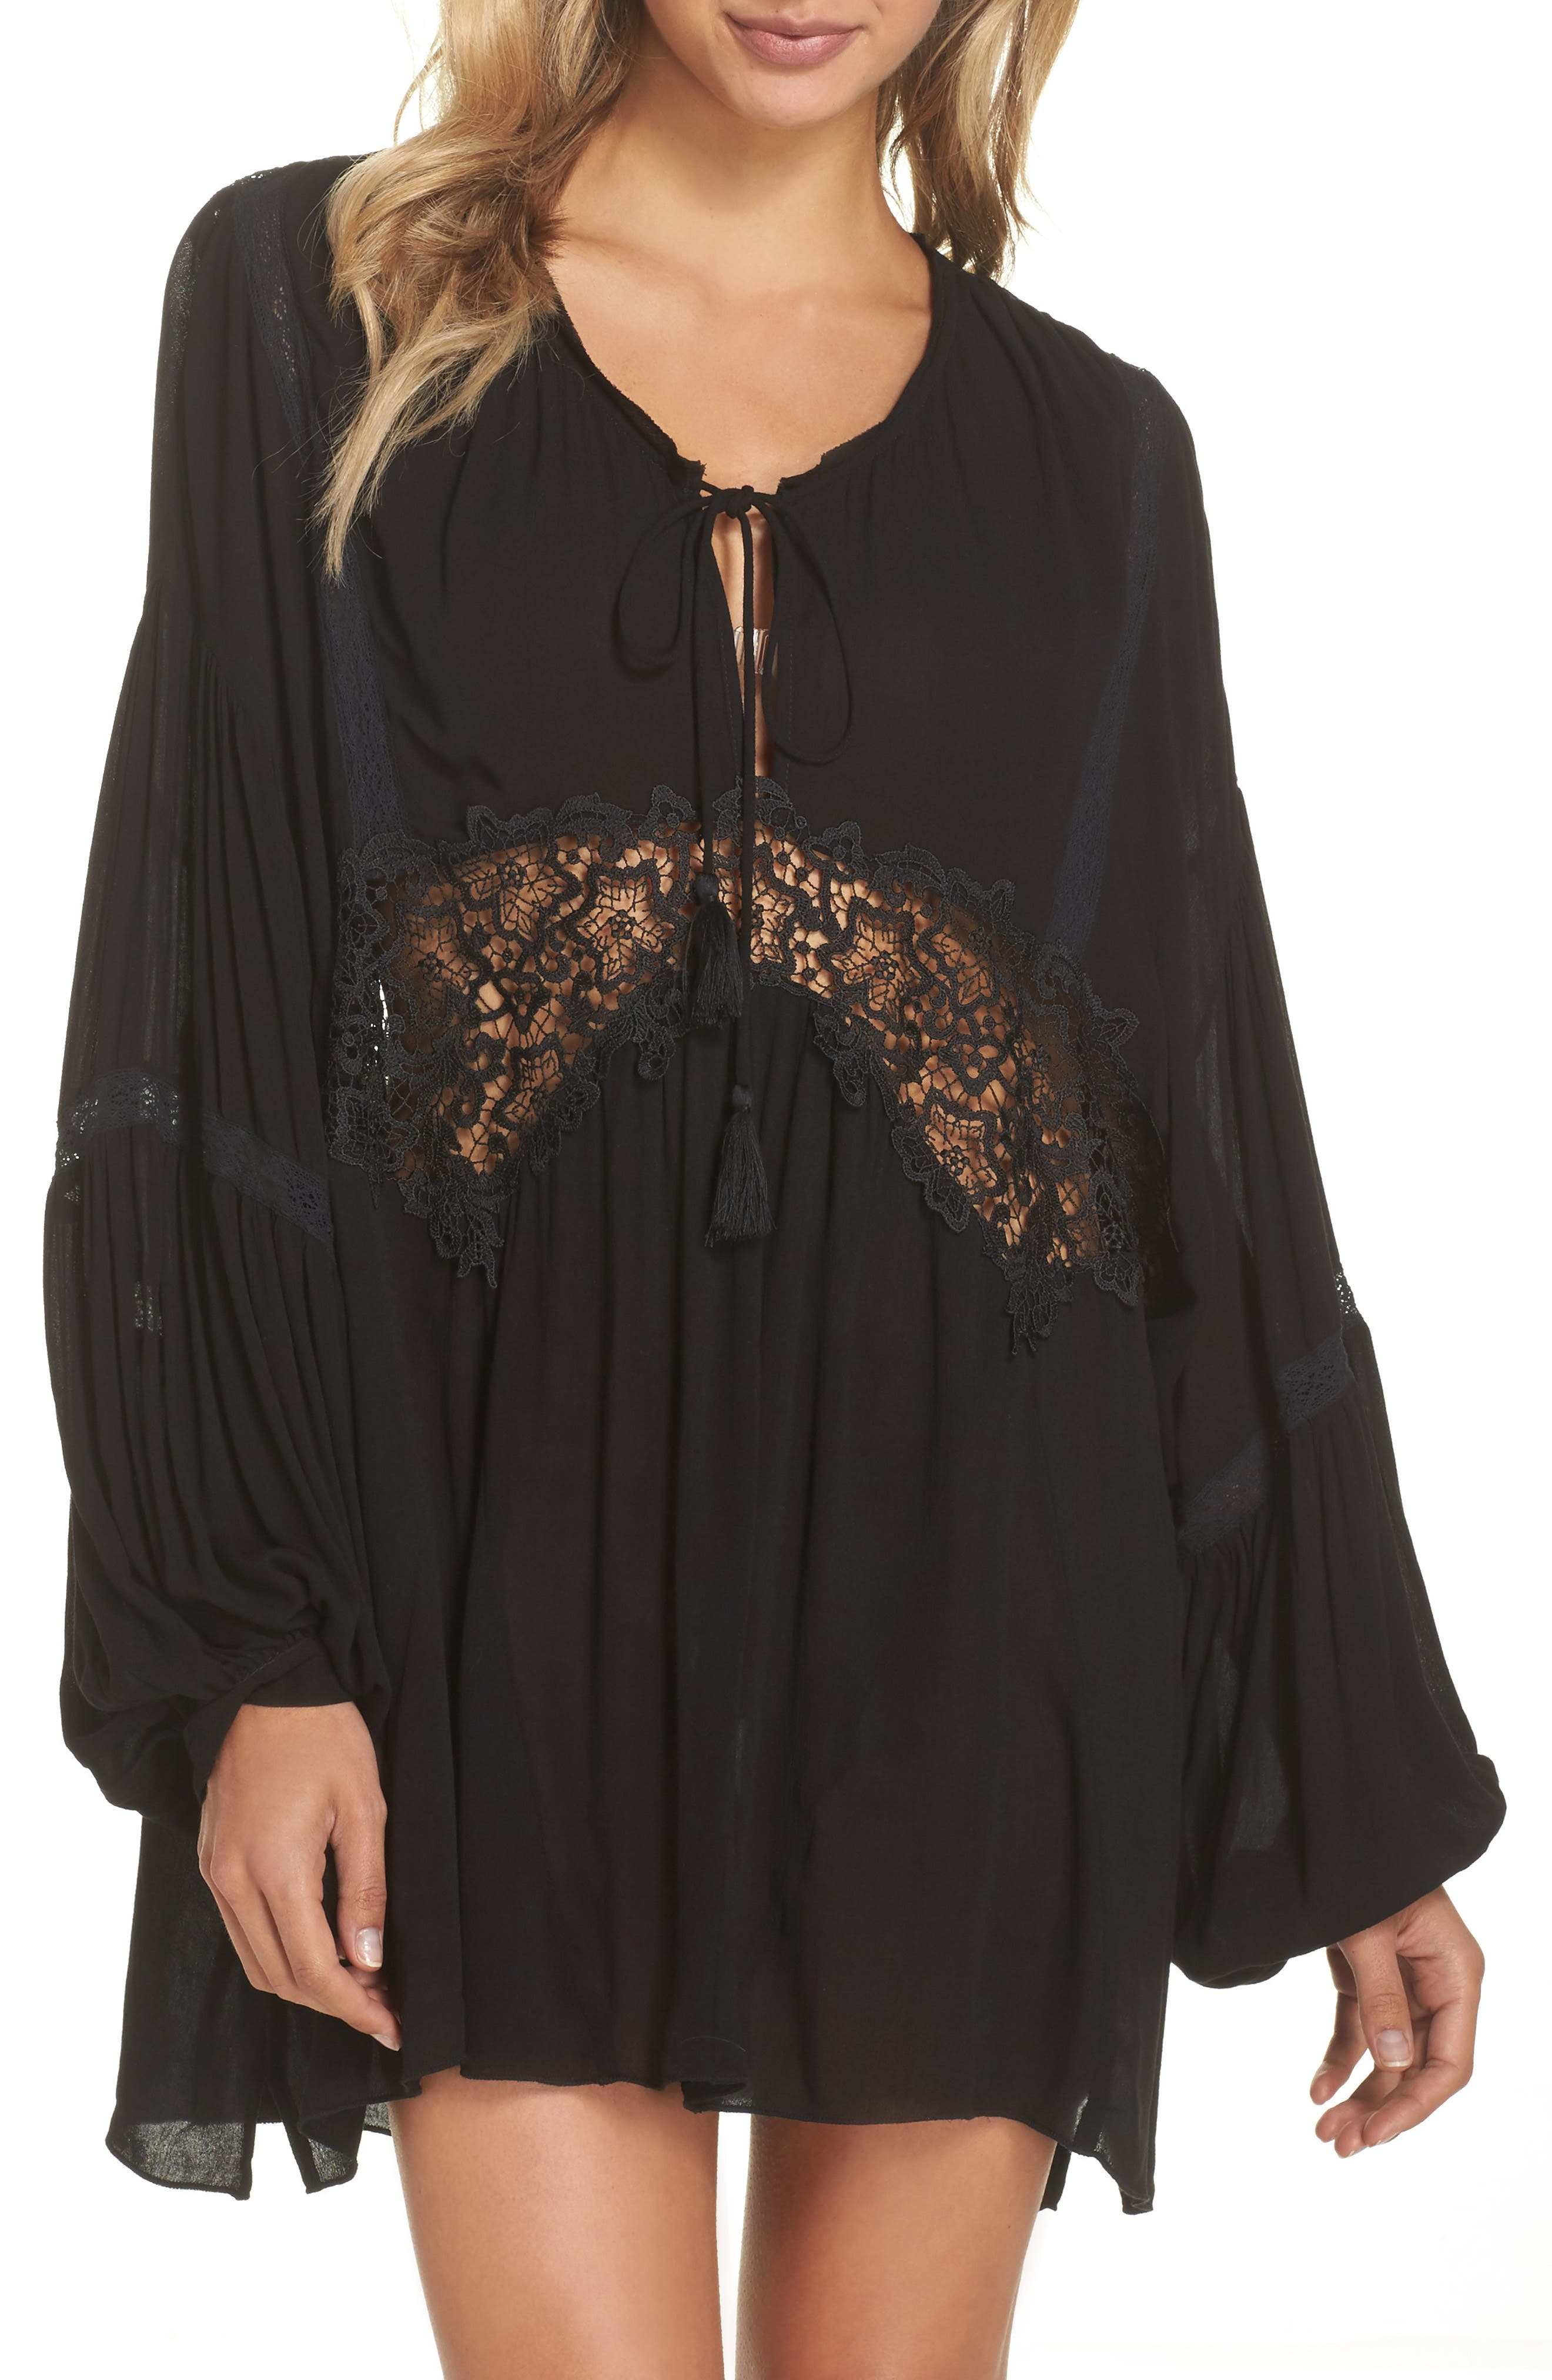 Alternate Image 1 Selected - Free People Intimately FP Sleepin' 'n' Dreamin' Lace Inset Top